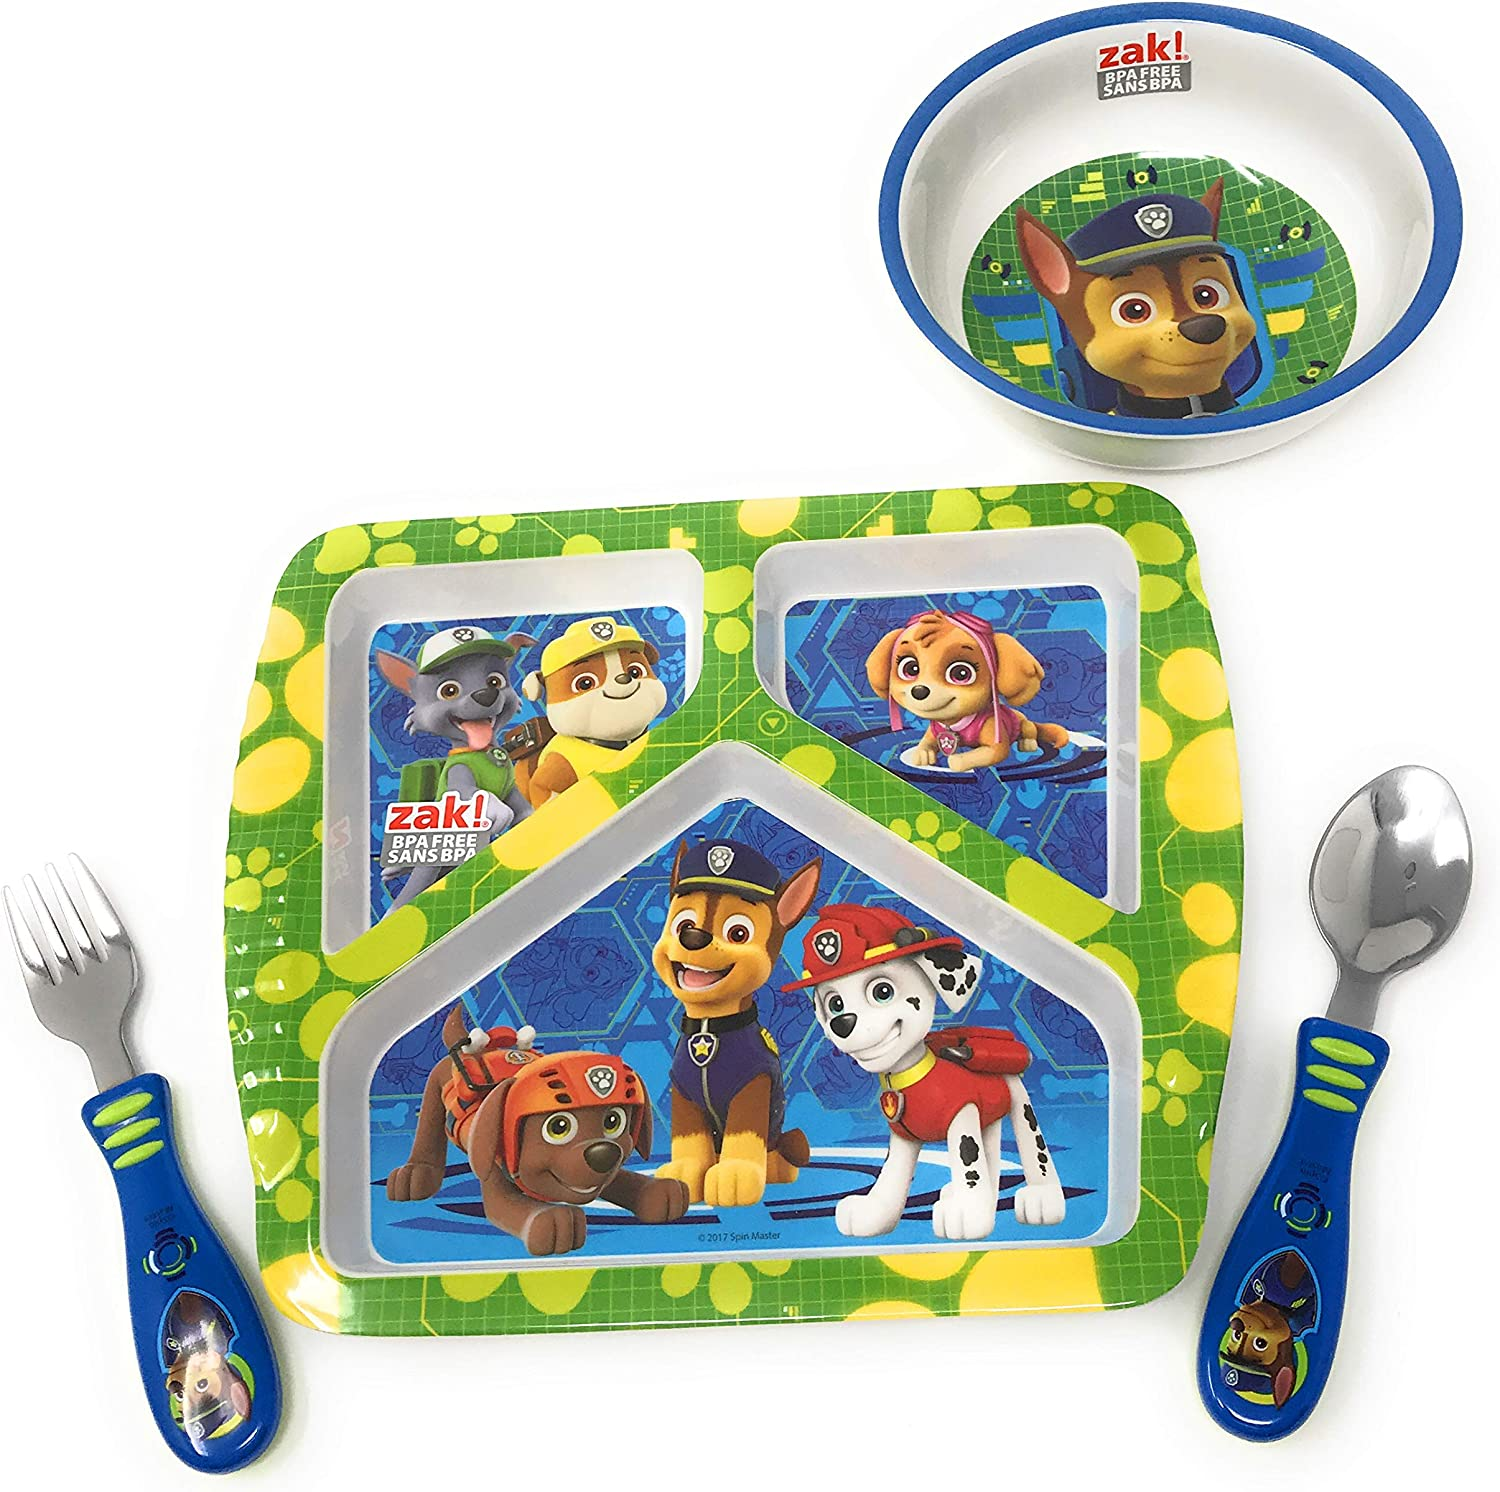 and Tumbler Featuring Skye and Everest from Nickelodeons Paw Patrol Designs 3-Piece Mealtime Set Includes Plate Break-Resistant and BPA-Free Plastic Bowl Zak